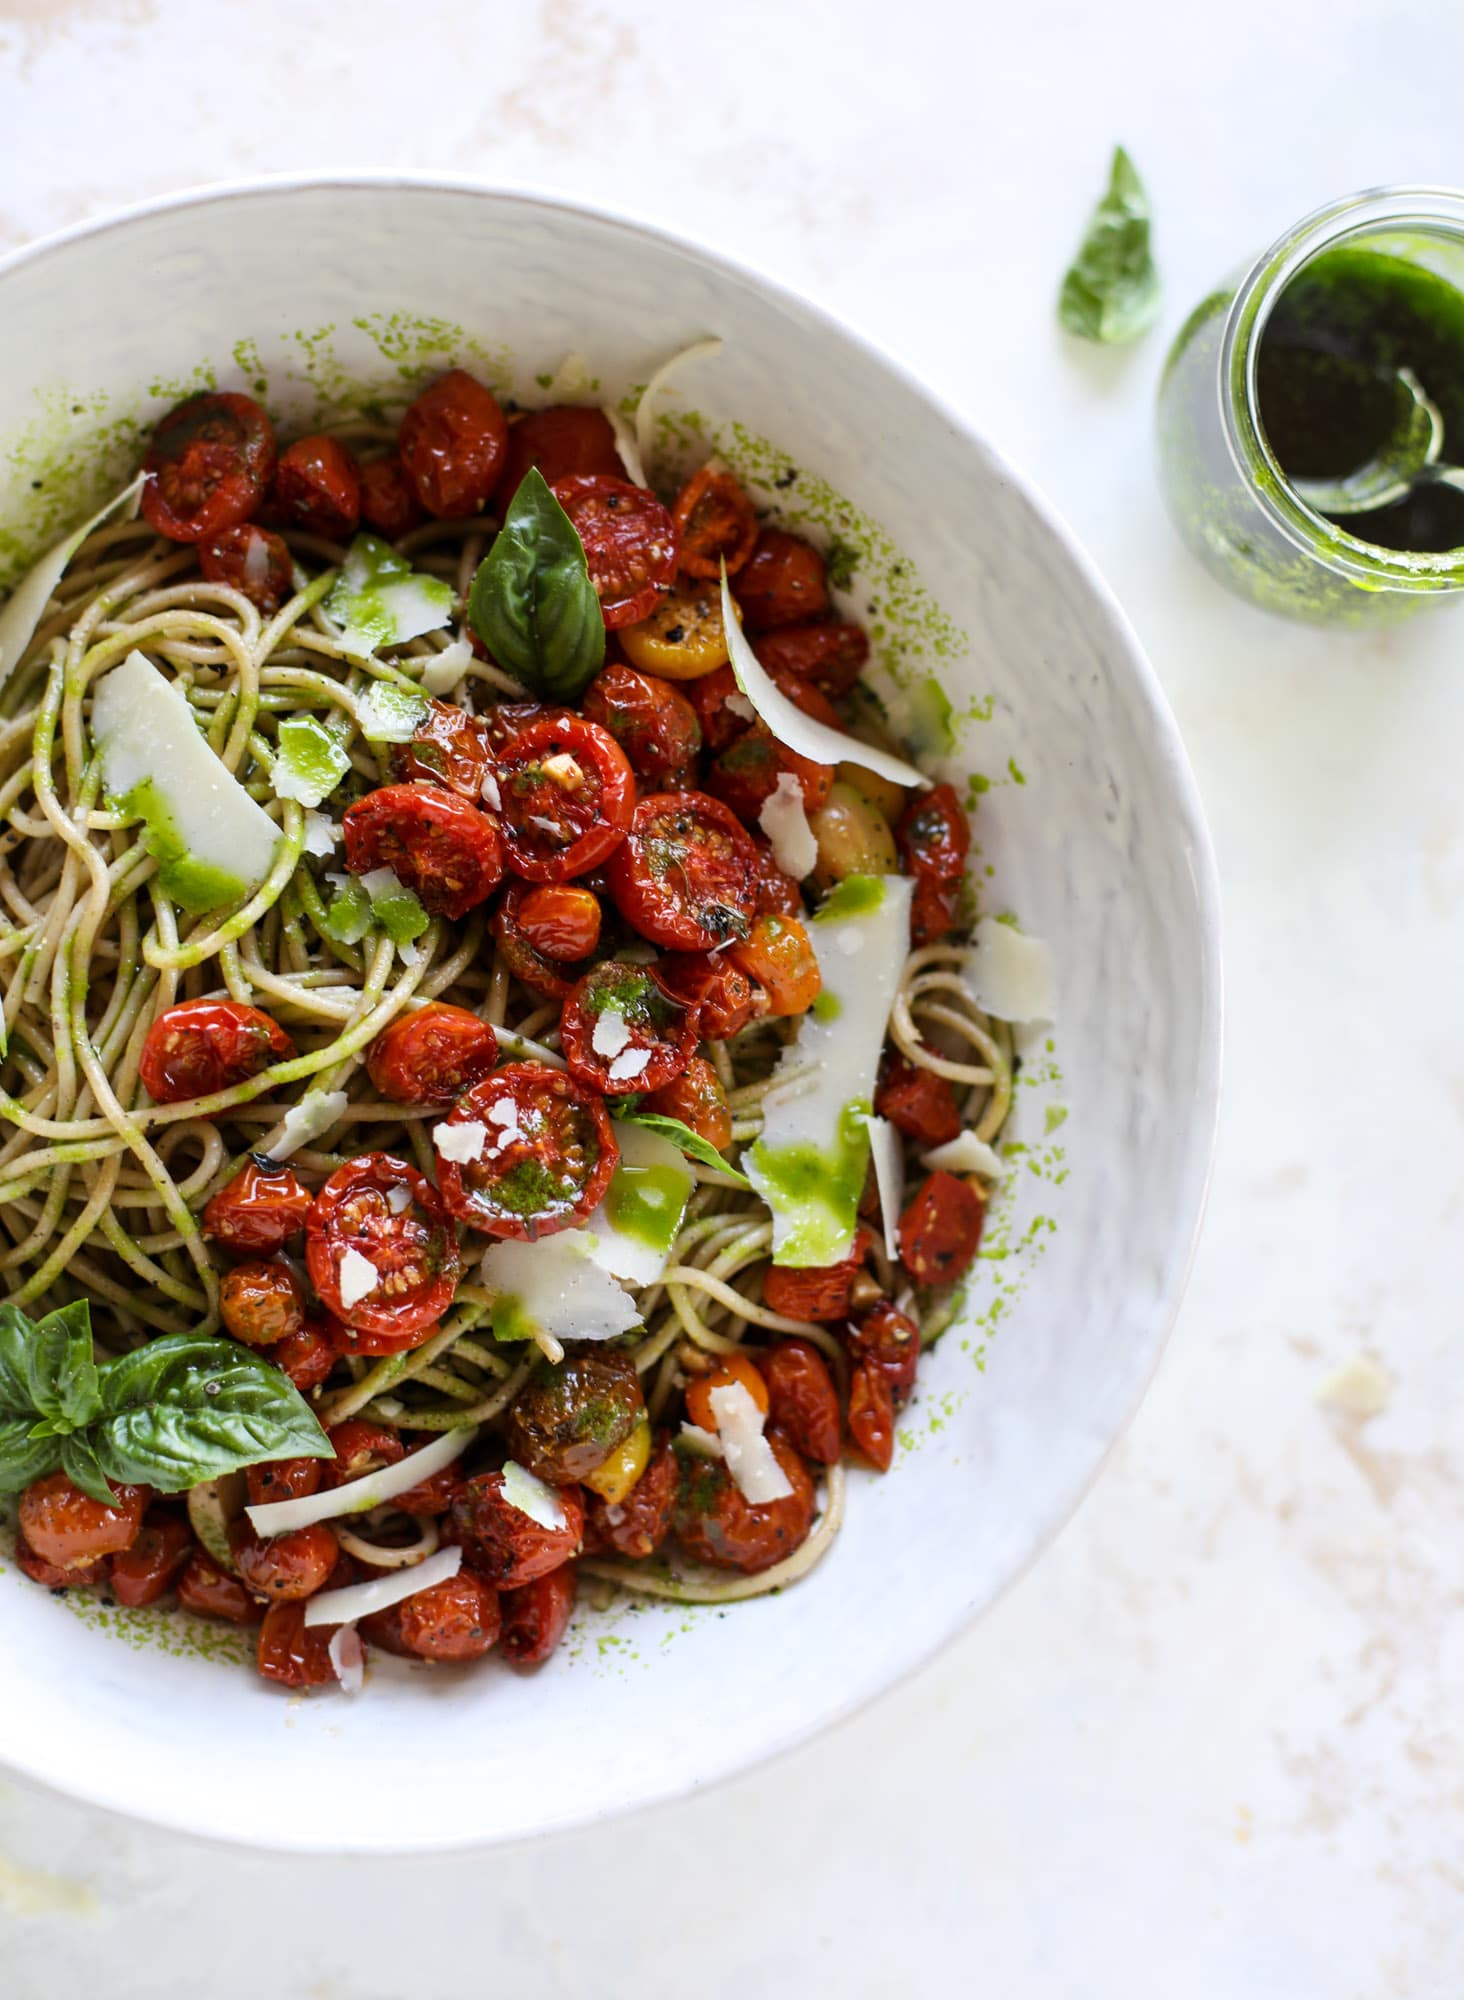 This tomato basil pasta is a labor of love! Made with slow roasted tomatoes, basil oil and tons of parmesan, it's ridiculously full of flavor.